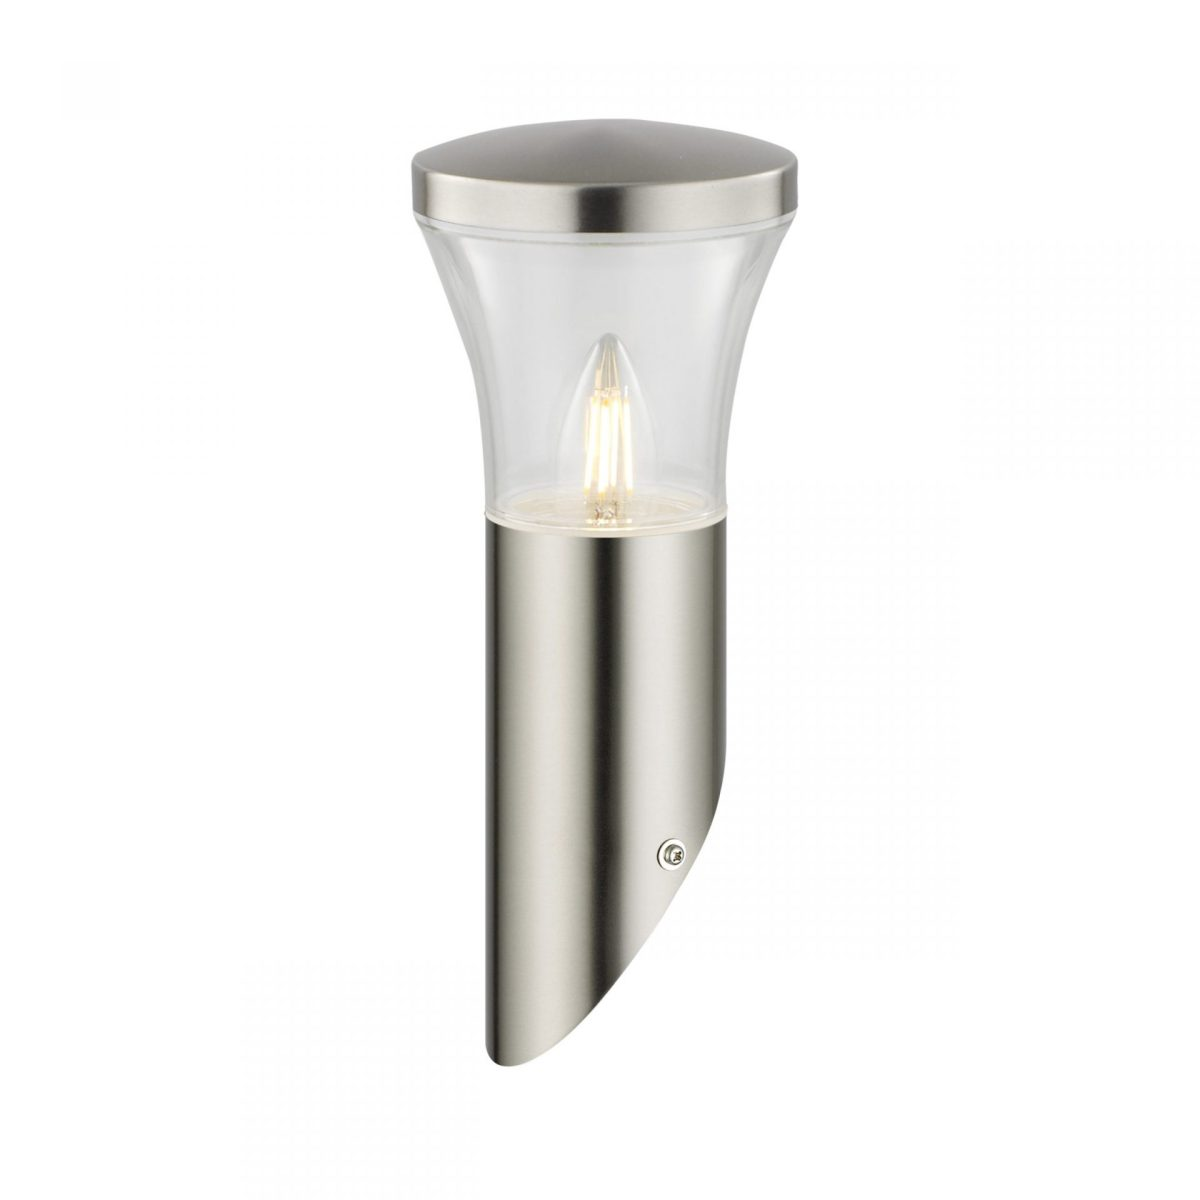 Outdoor stainless steel wall lighting